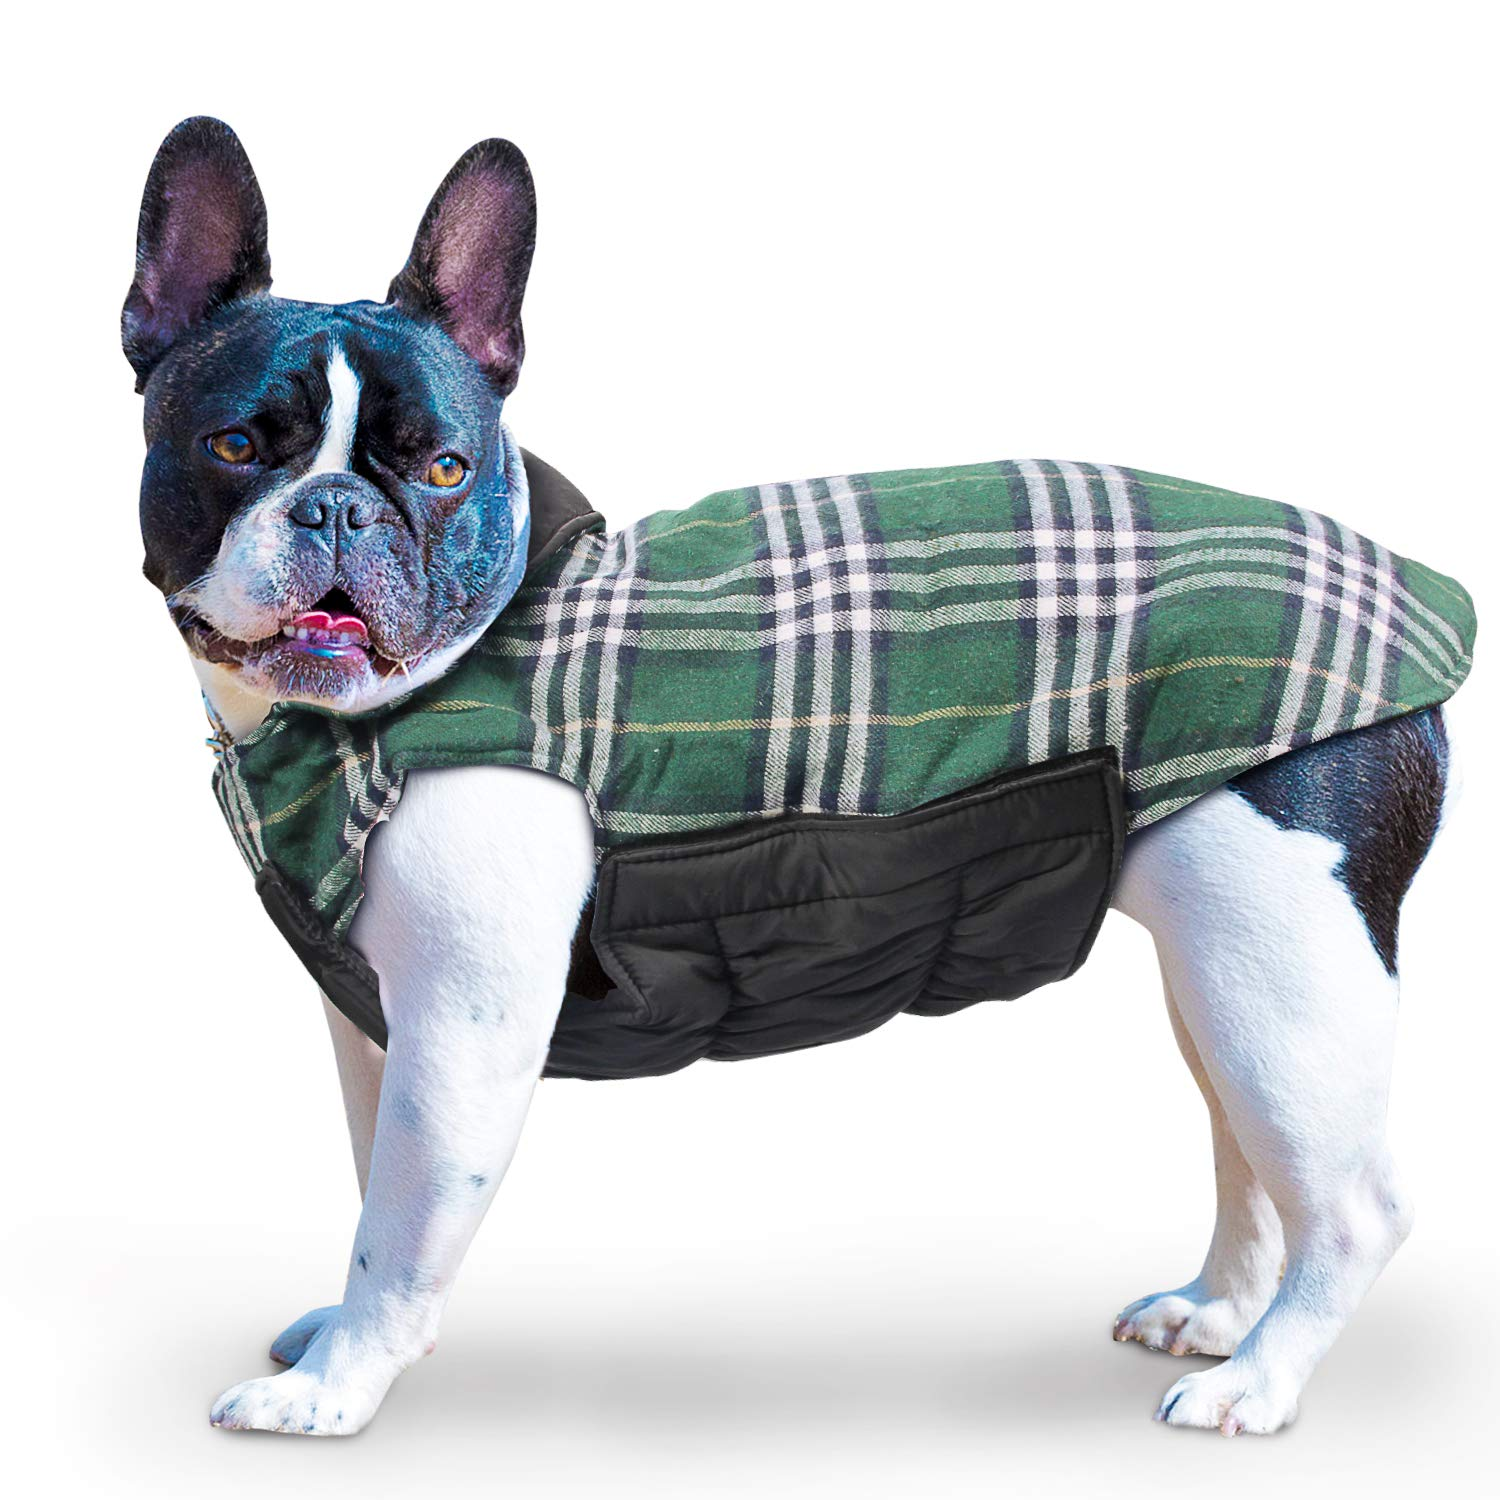 REENUO Pet Dog Jackets Windproof Warm Coats - Snug British Style Plaid Reversible Vest Clothes Autumn Winter Padded Waistcoat Chest Protector Suitable for Small Medium Large Dogs (XS-3XL) Green L